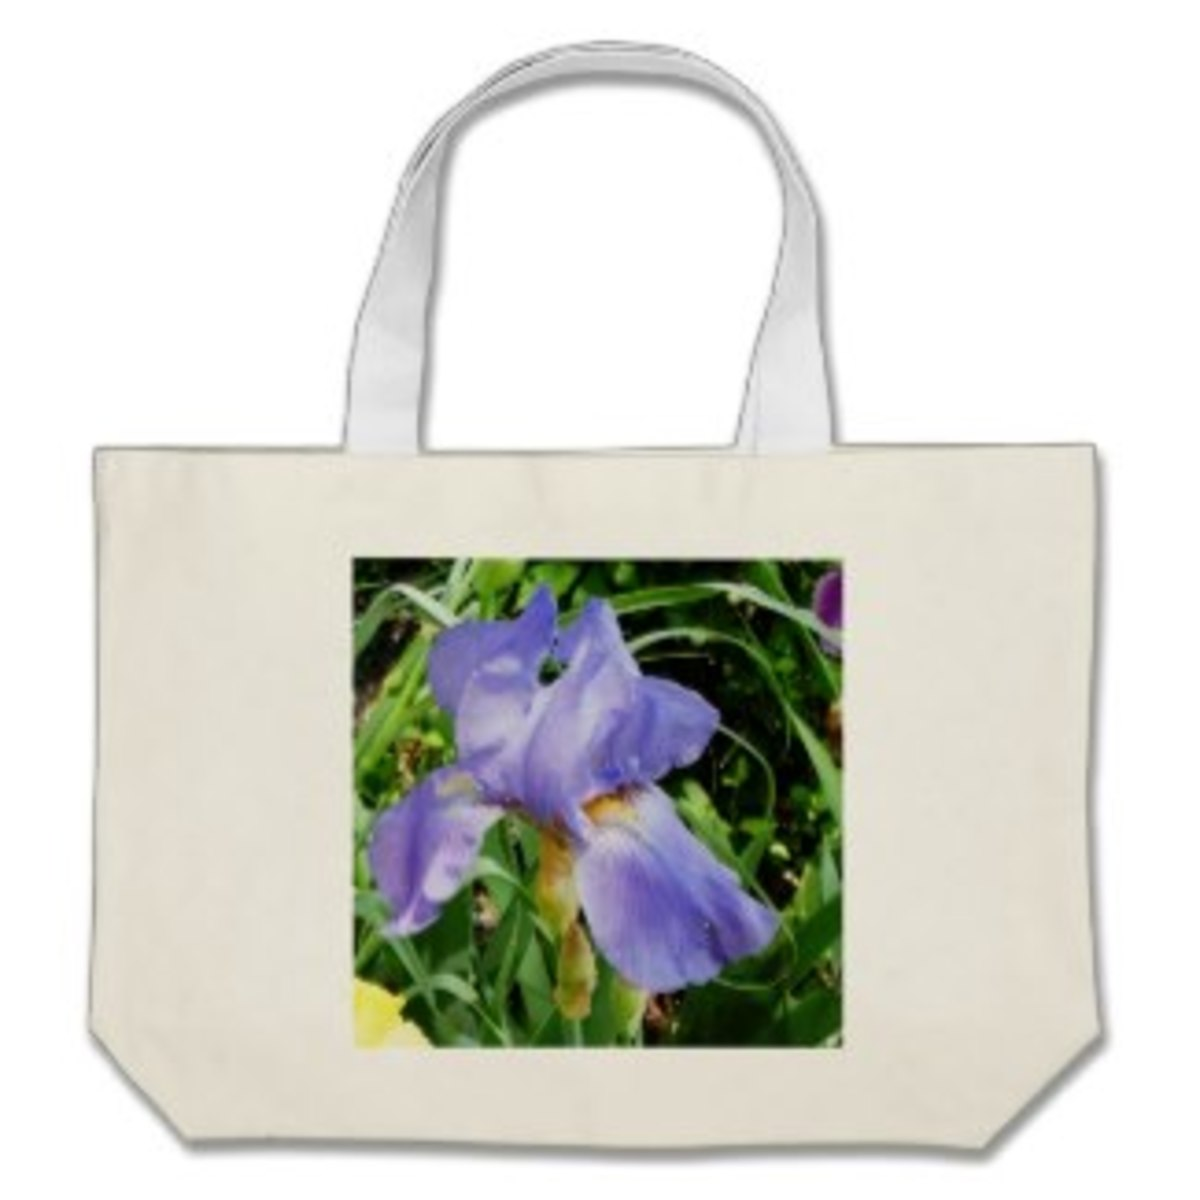 The gardener can always use another tote. This iris graphic is lovely.